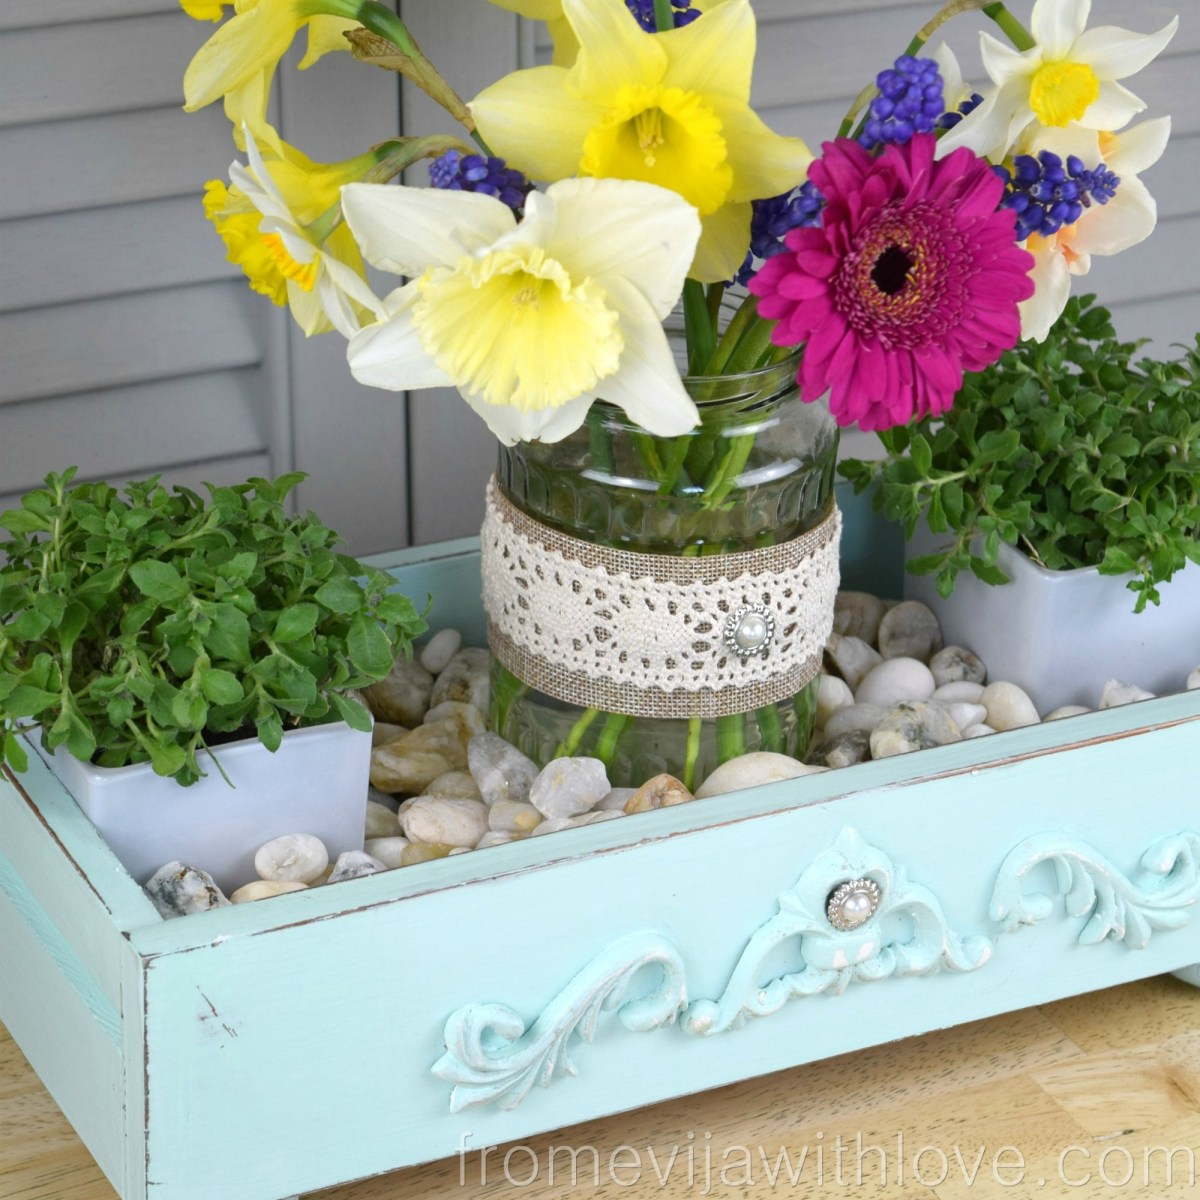 Thrift Store Swap - Drawer Turned into Spring Centerpiece